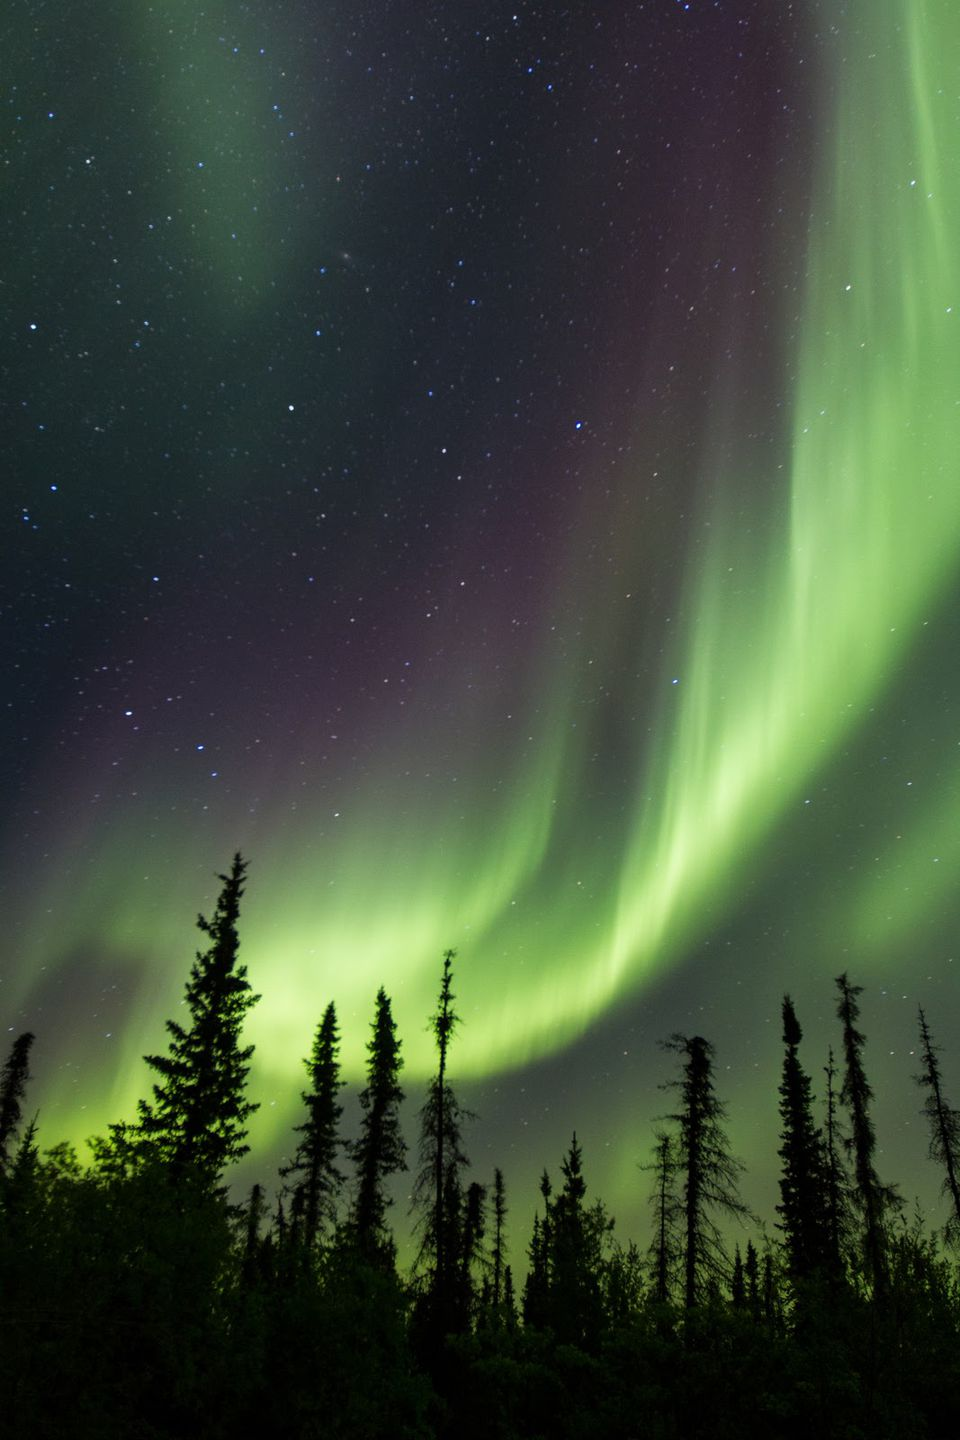 One of the highlights of off-season travel is seeing the northern lights